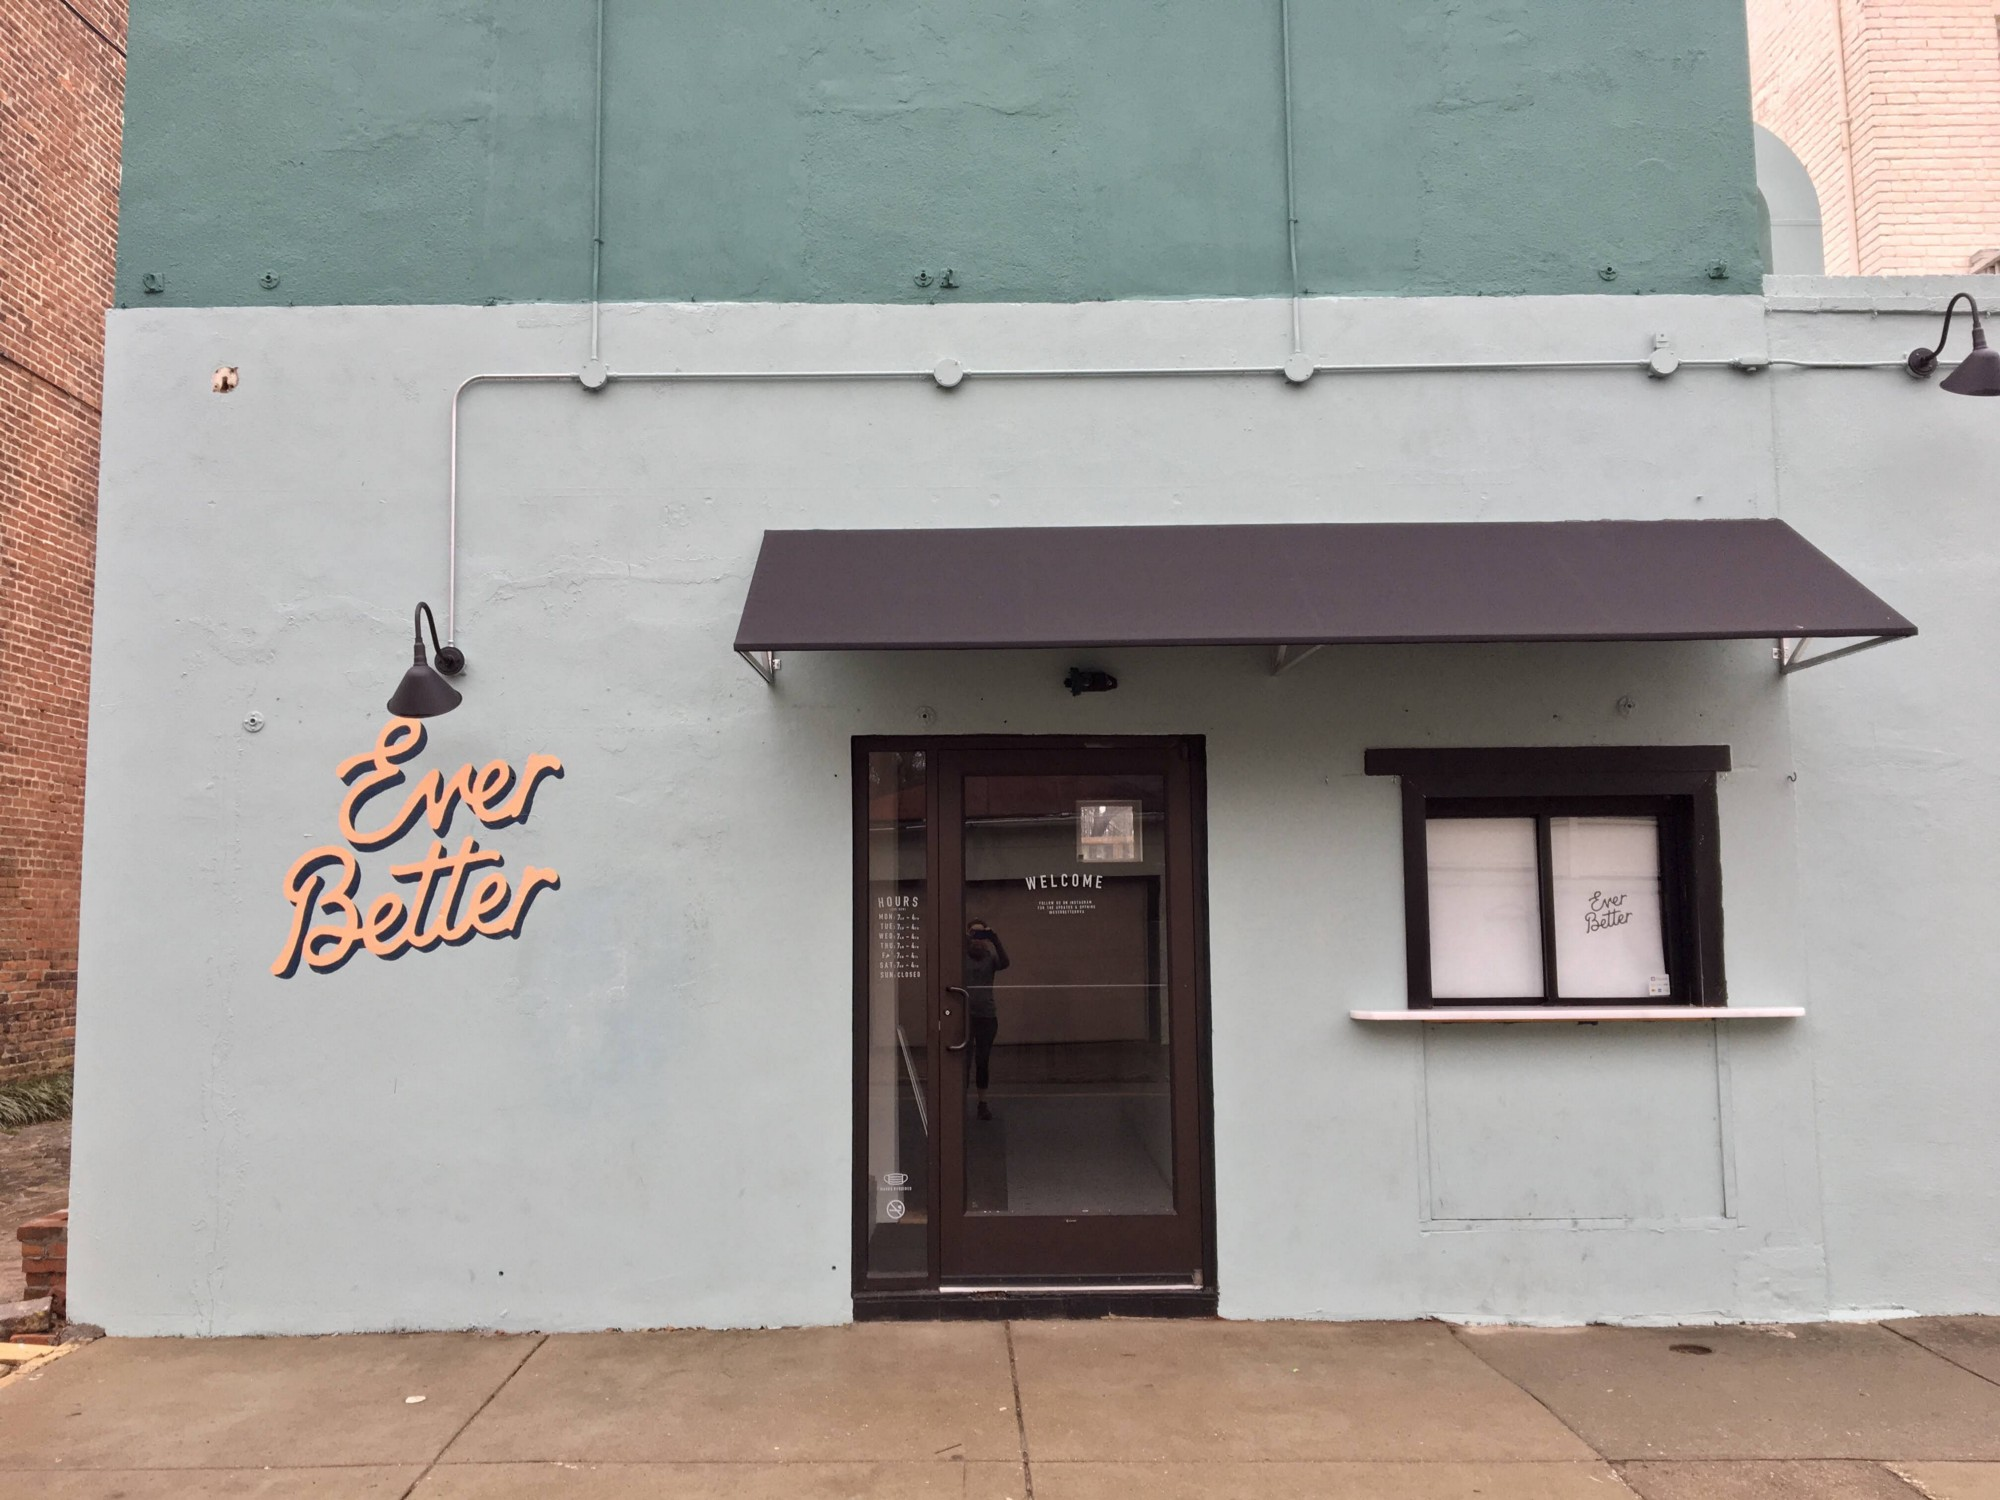 Outside of Ever Better coffee shop